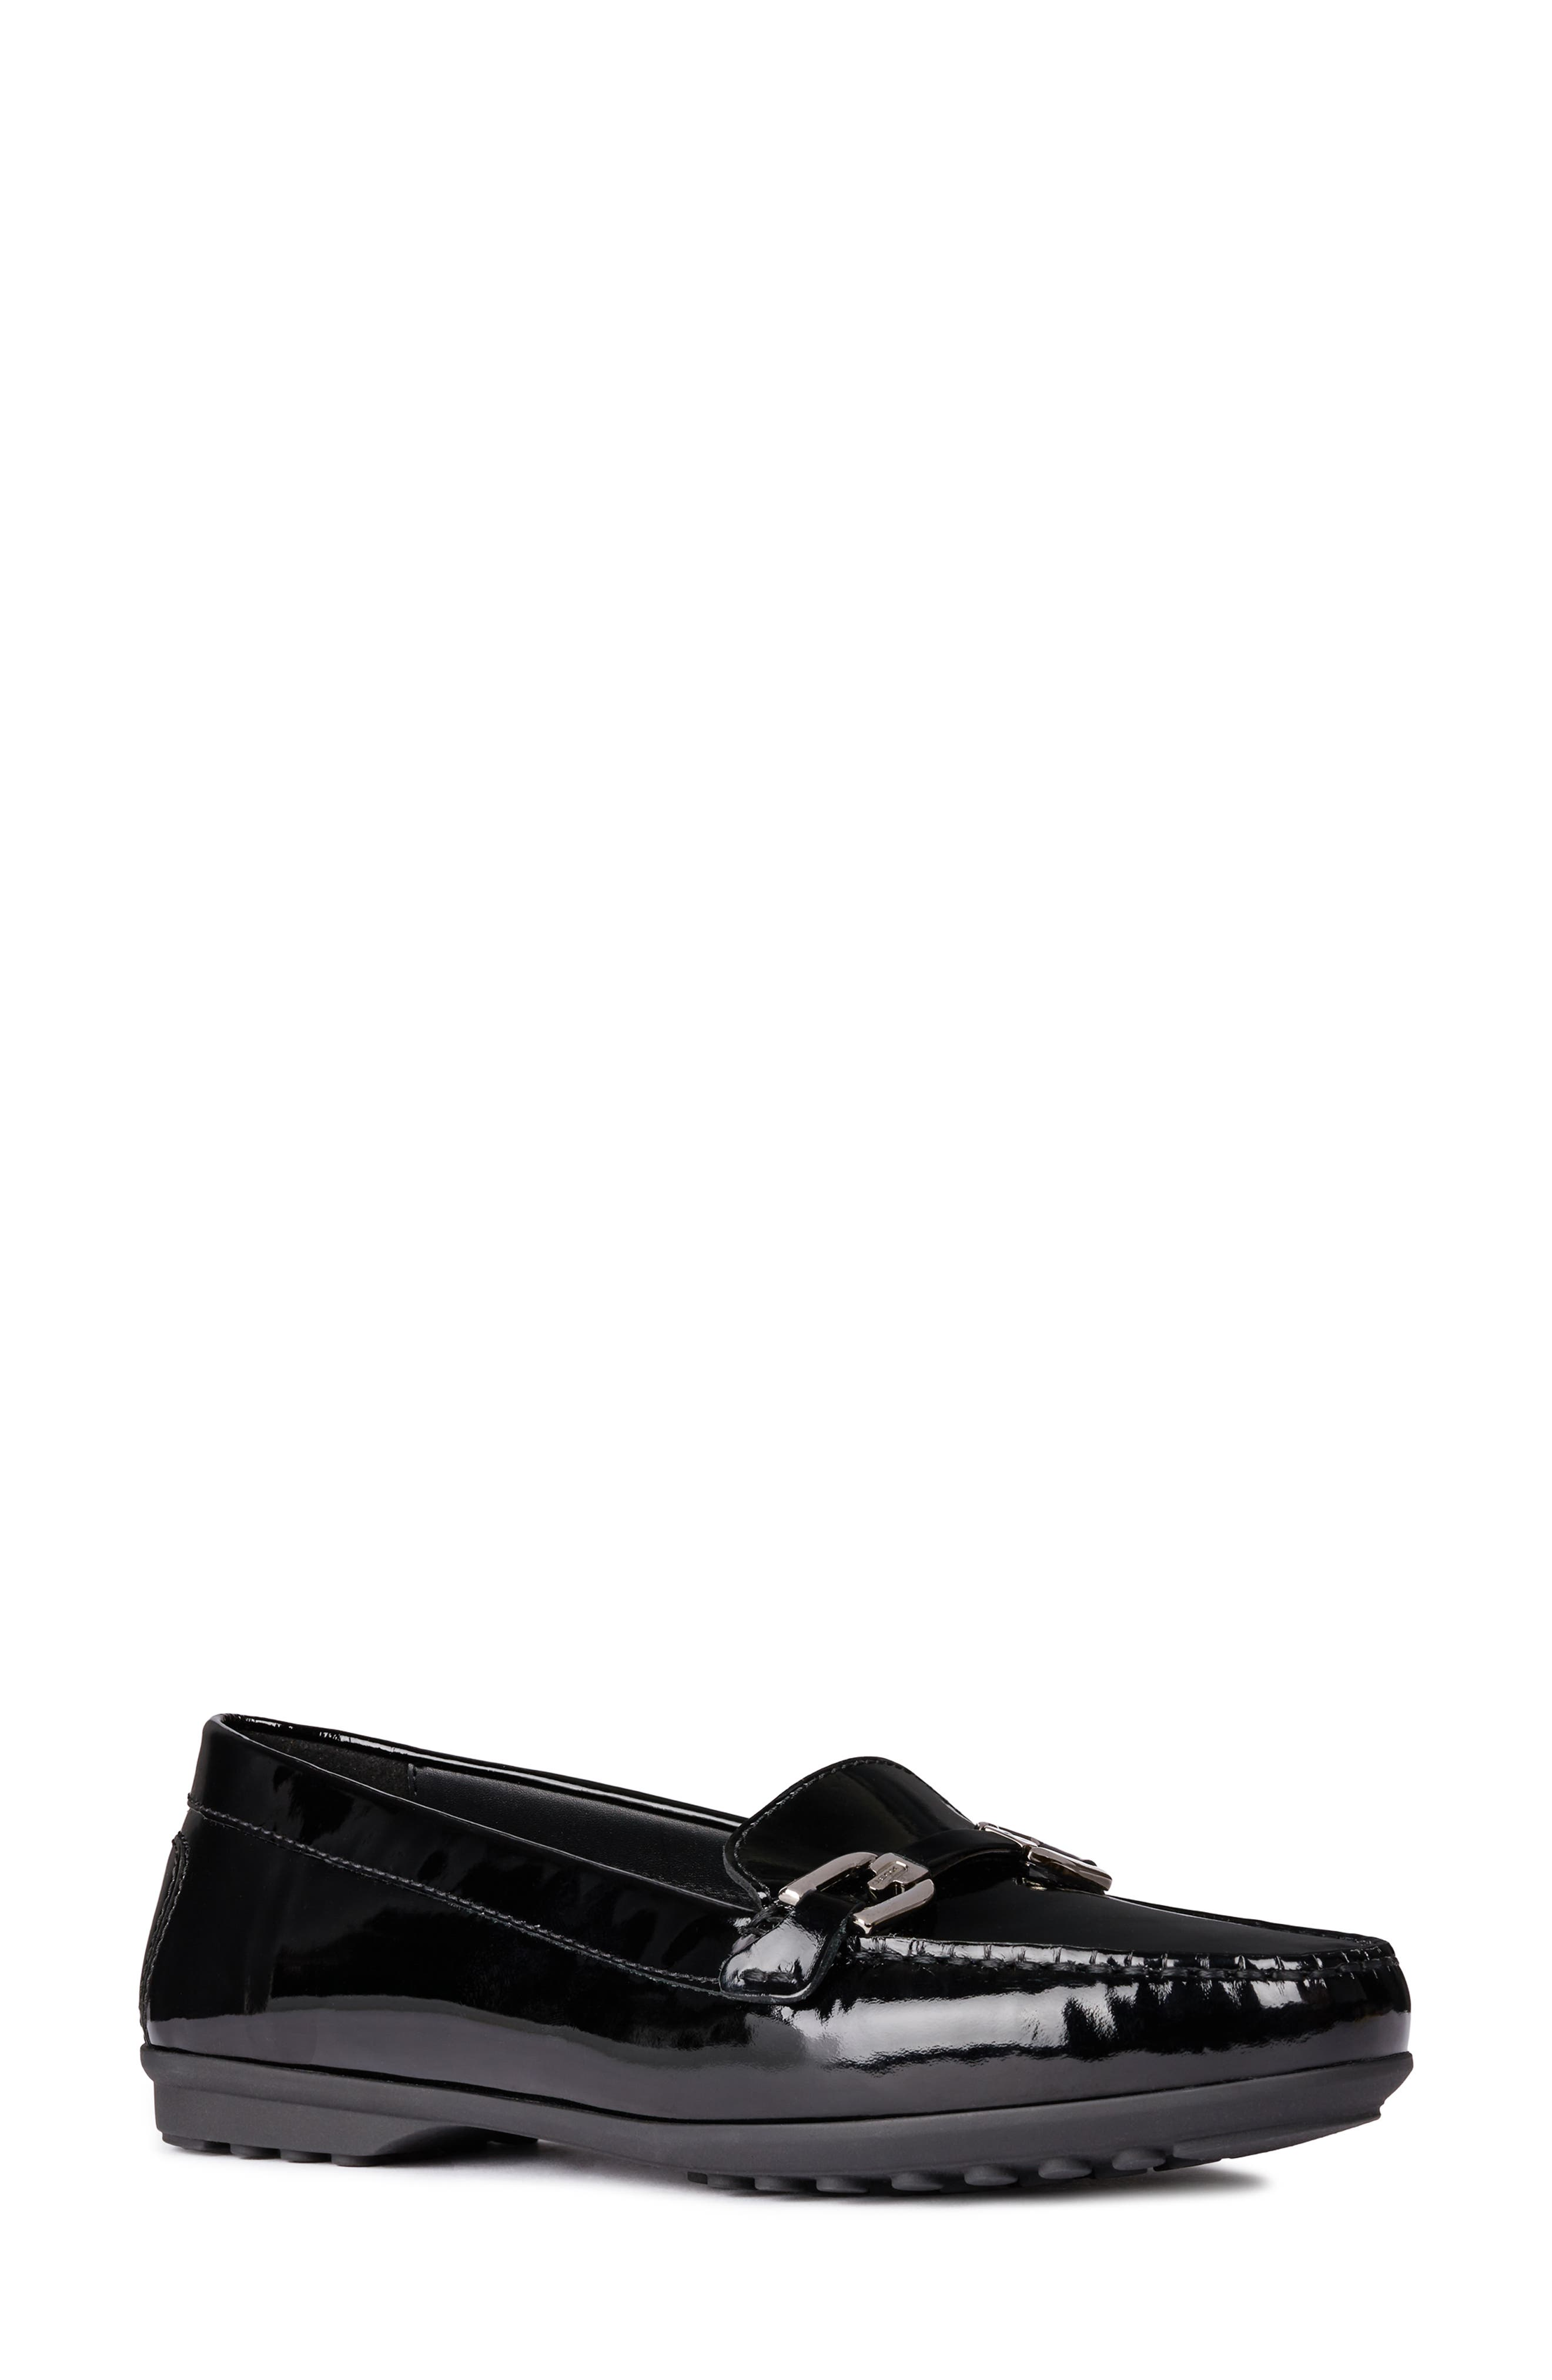 Alidia Loafer,                             Main thumbnail 1, color,                             BLACK LEATHER